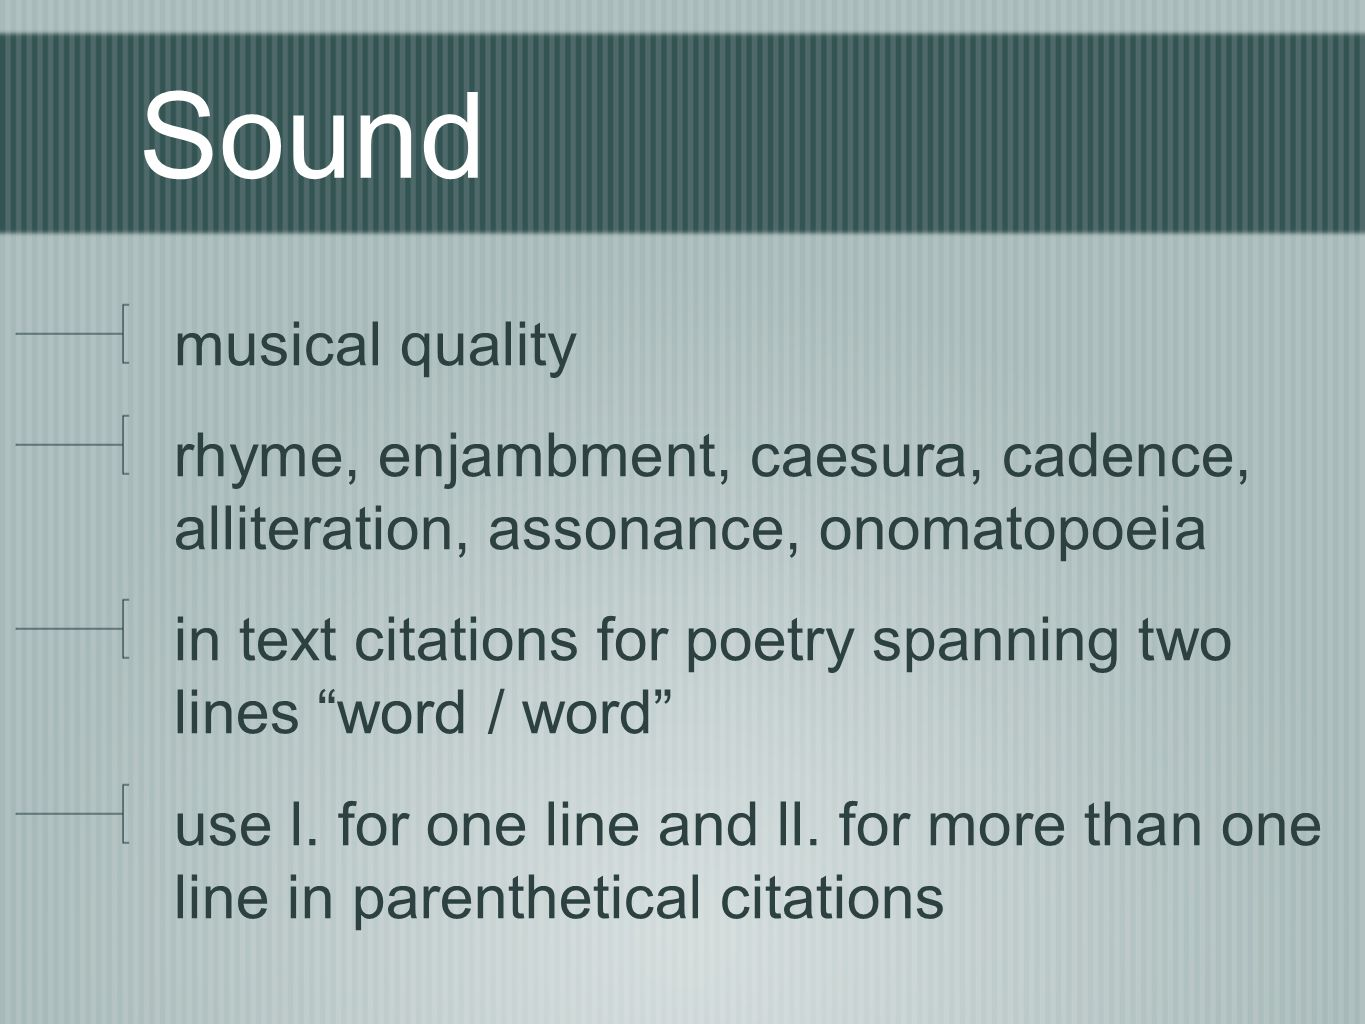 Sound musical quality. rhyme, enjambment, caesura, cadence, alliteration, assonance, onomatopoeia.